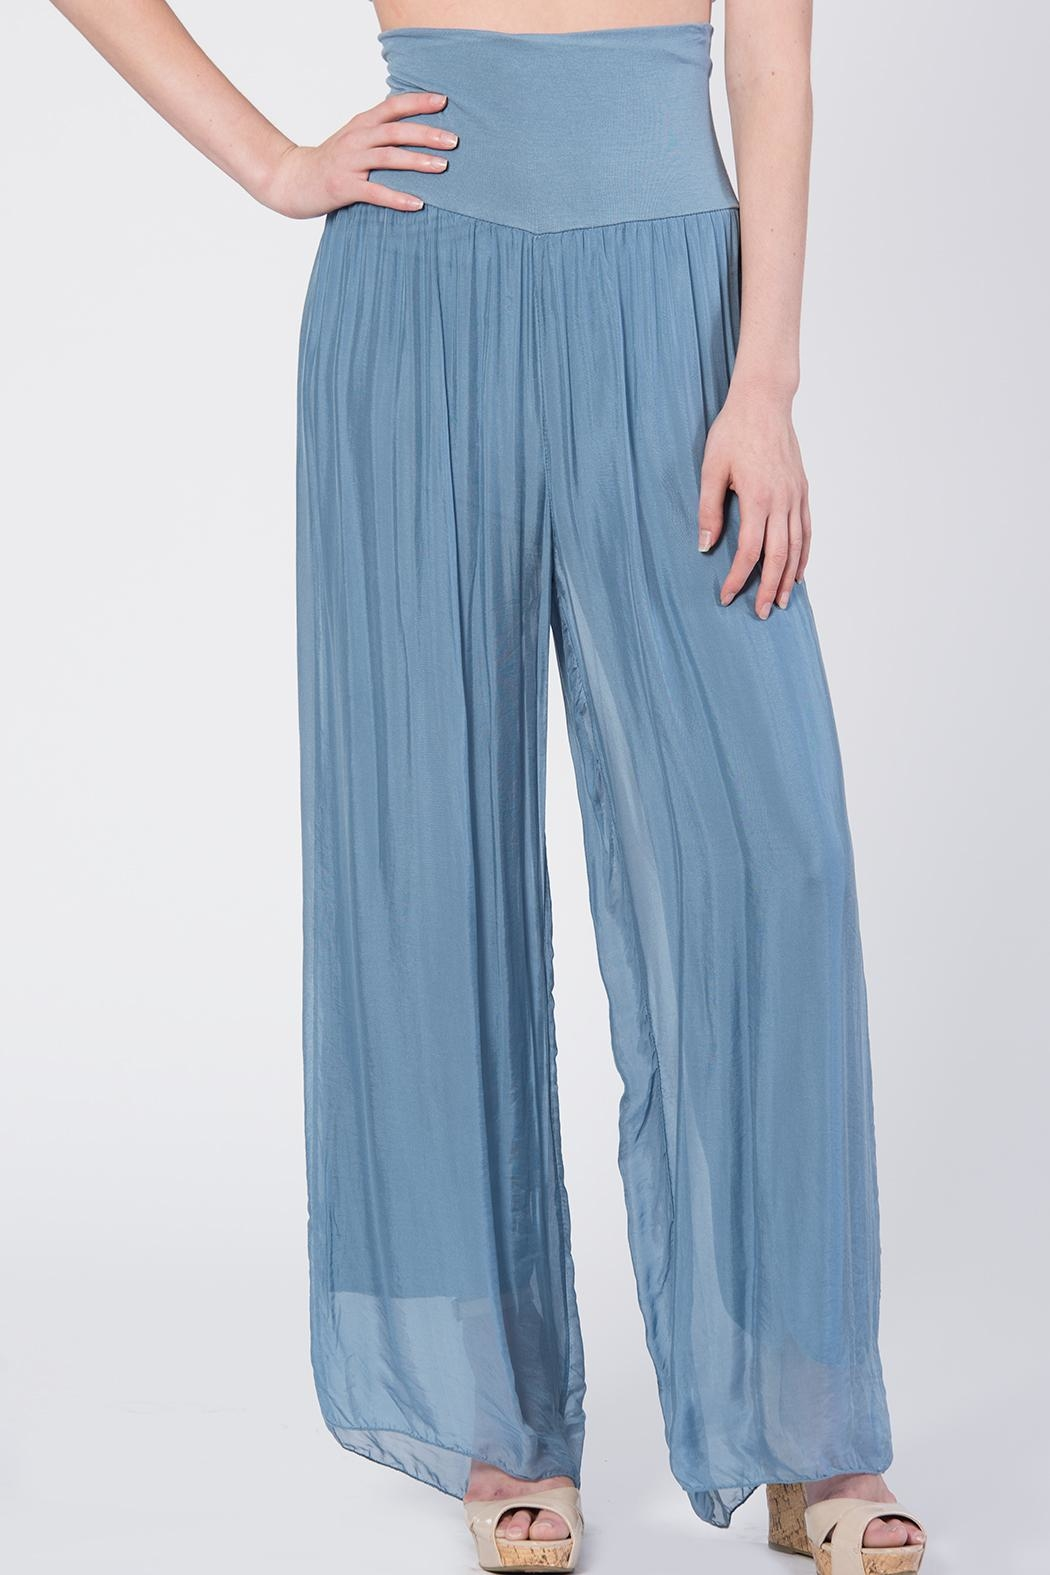 Catwalk Flowy Pleated Pants - Main Image